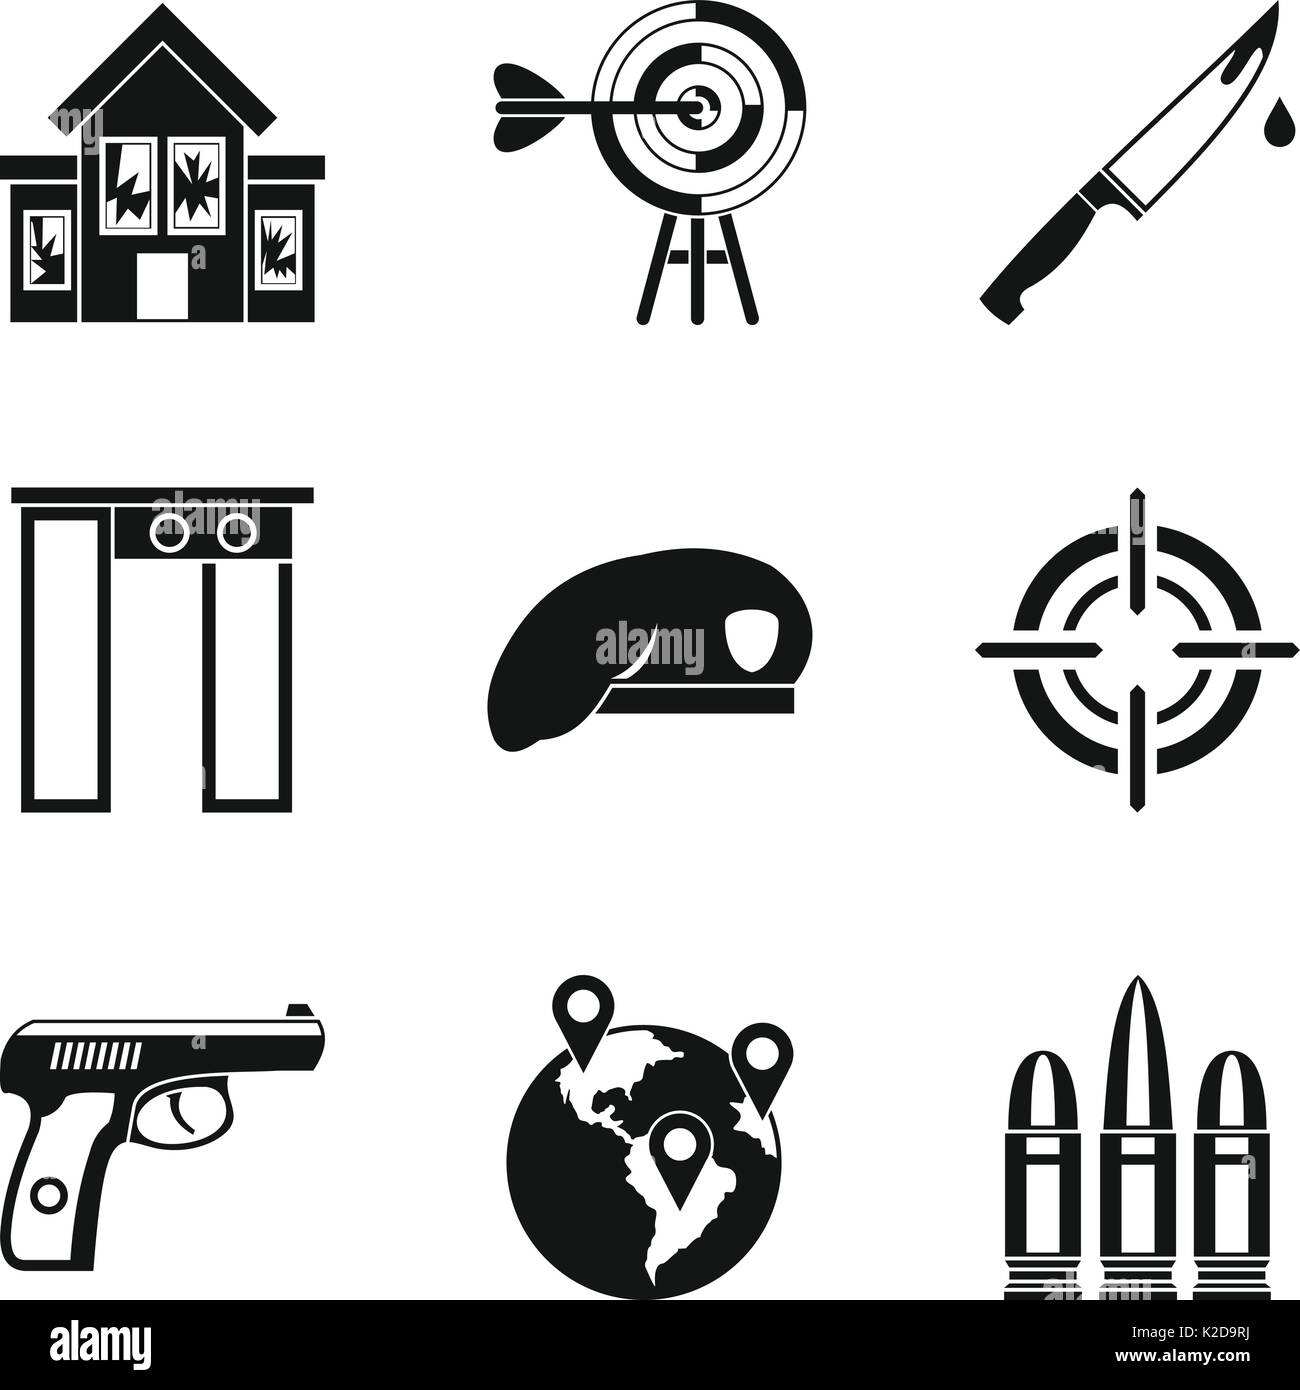 Mobster icons set, simple style - Stock Image